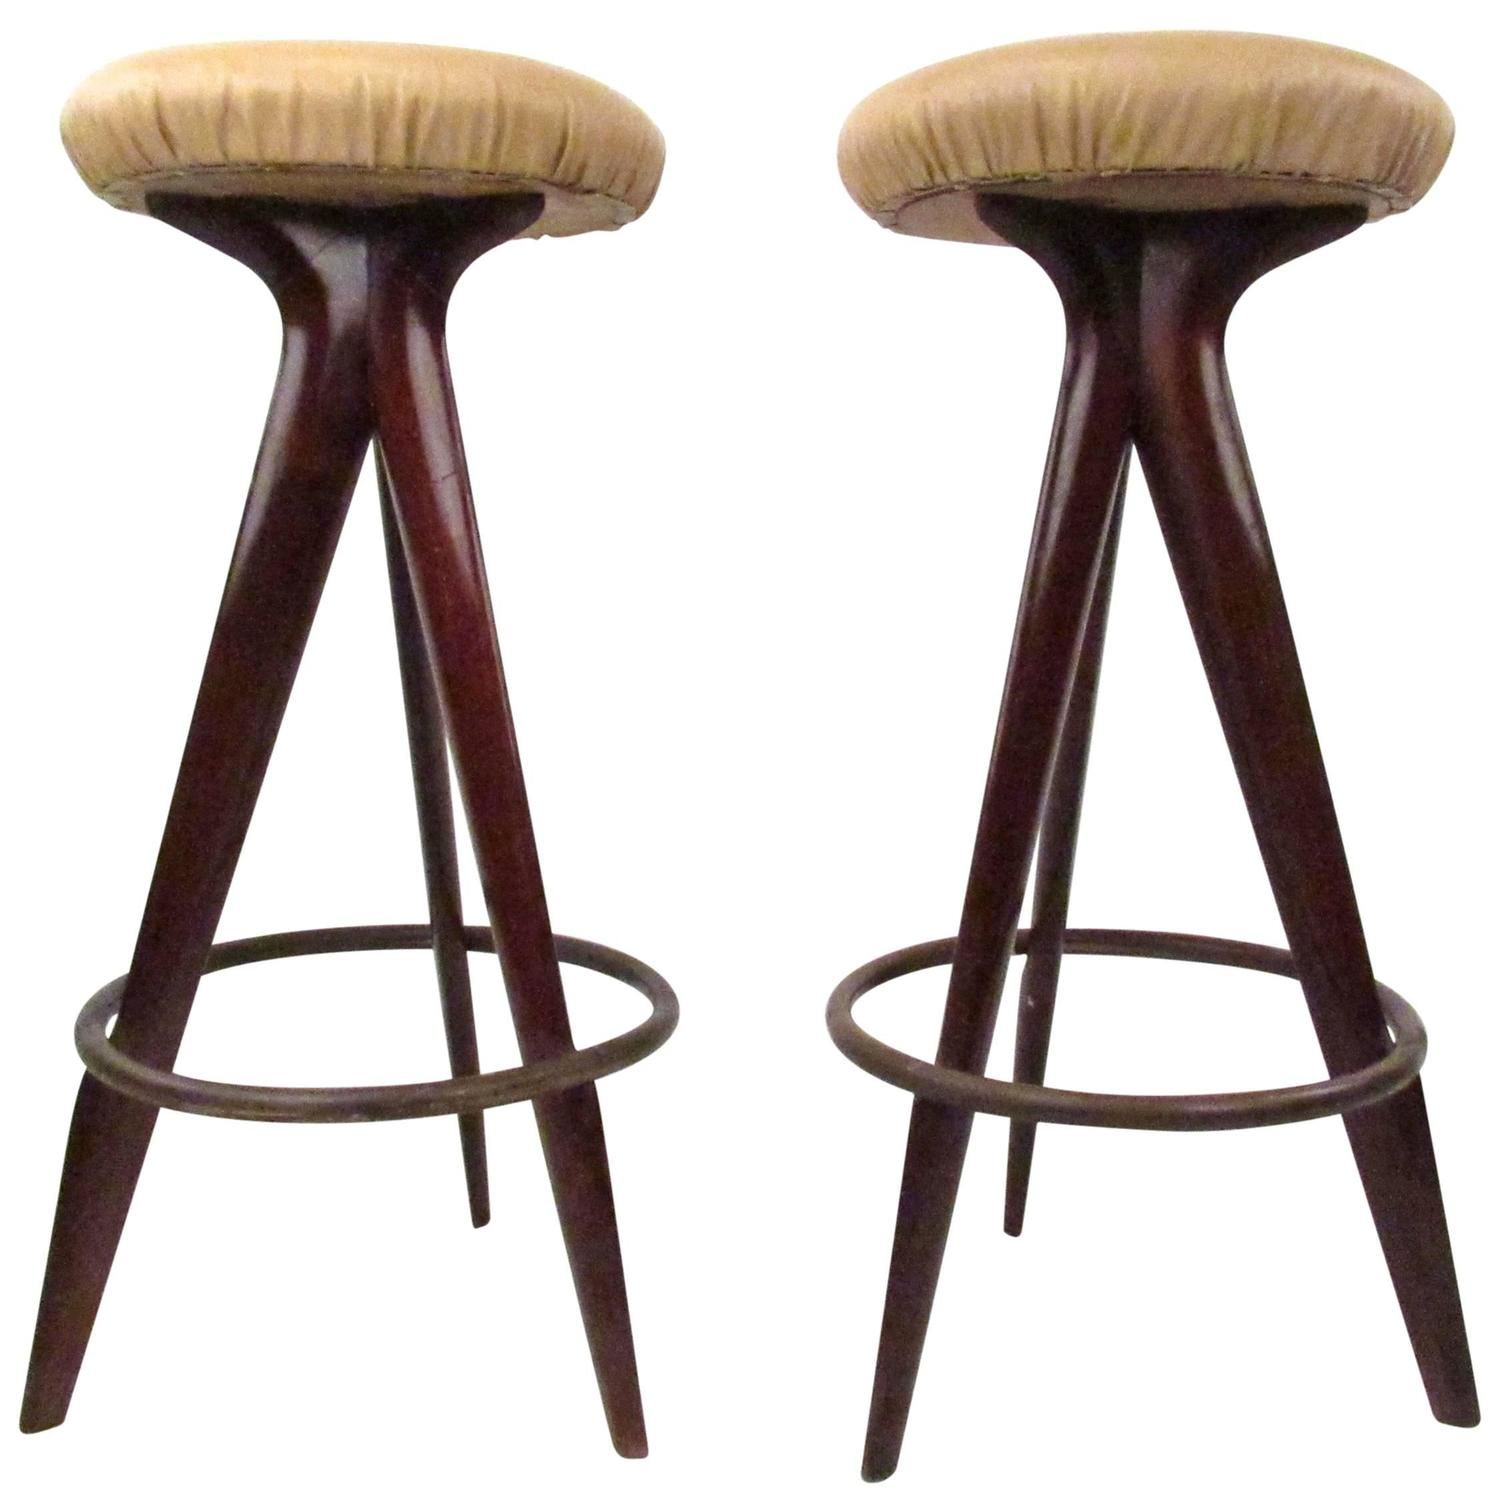 Pair of Mid-Century Modern Bar Stools For Sale at 1stdibs